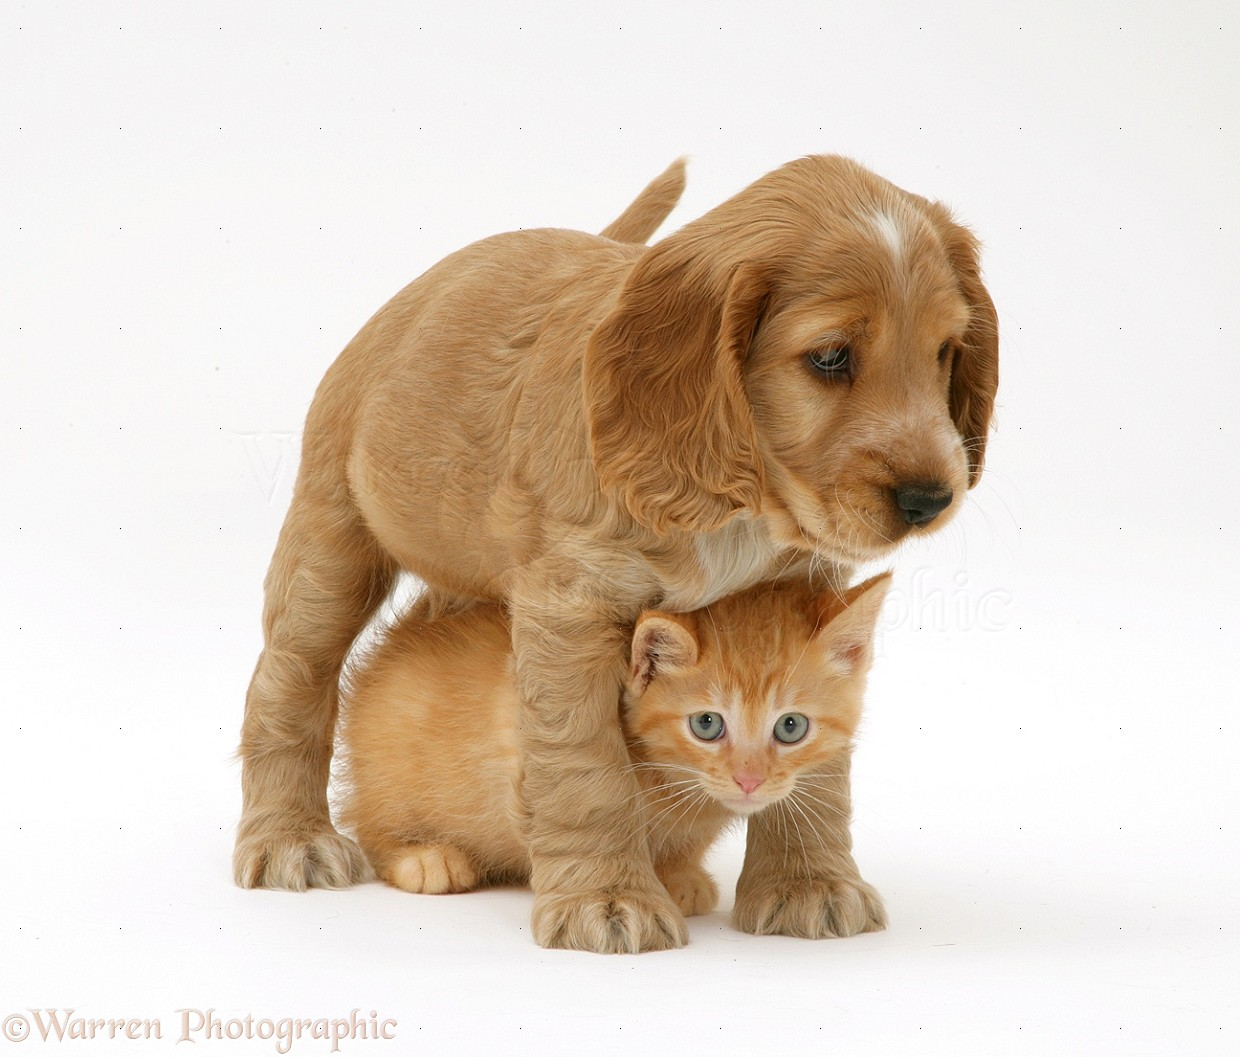 WP12382 Golden Cocker Spaniel puppy and British Shorthair red tabby ...: www.warrenphotographic.co.uk/12382-golden-cocker-spaniel-puppy-and...